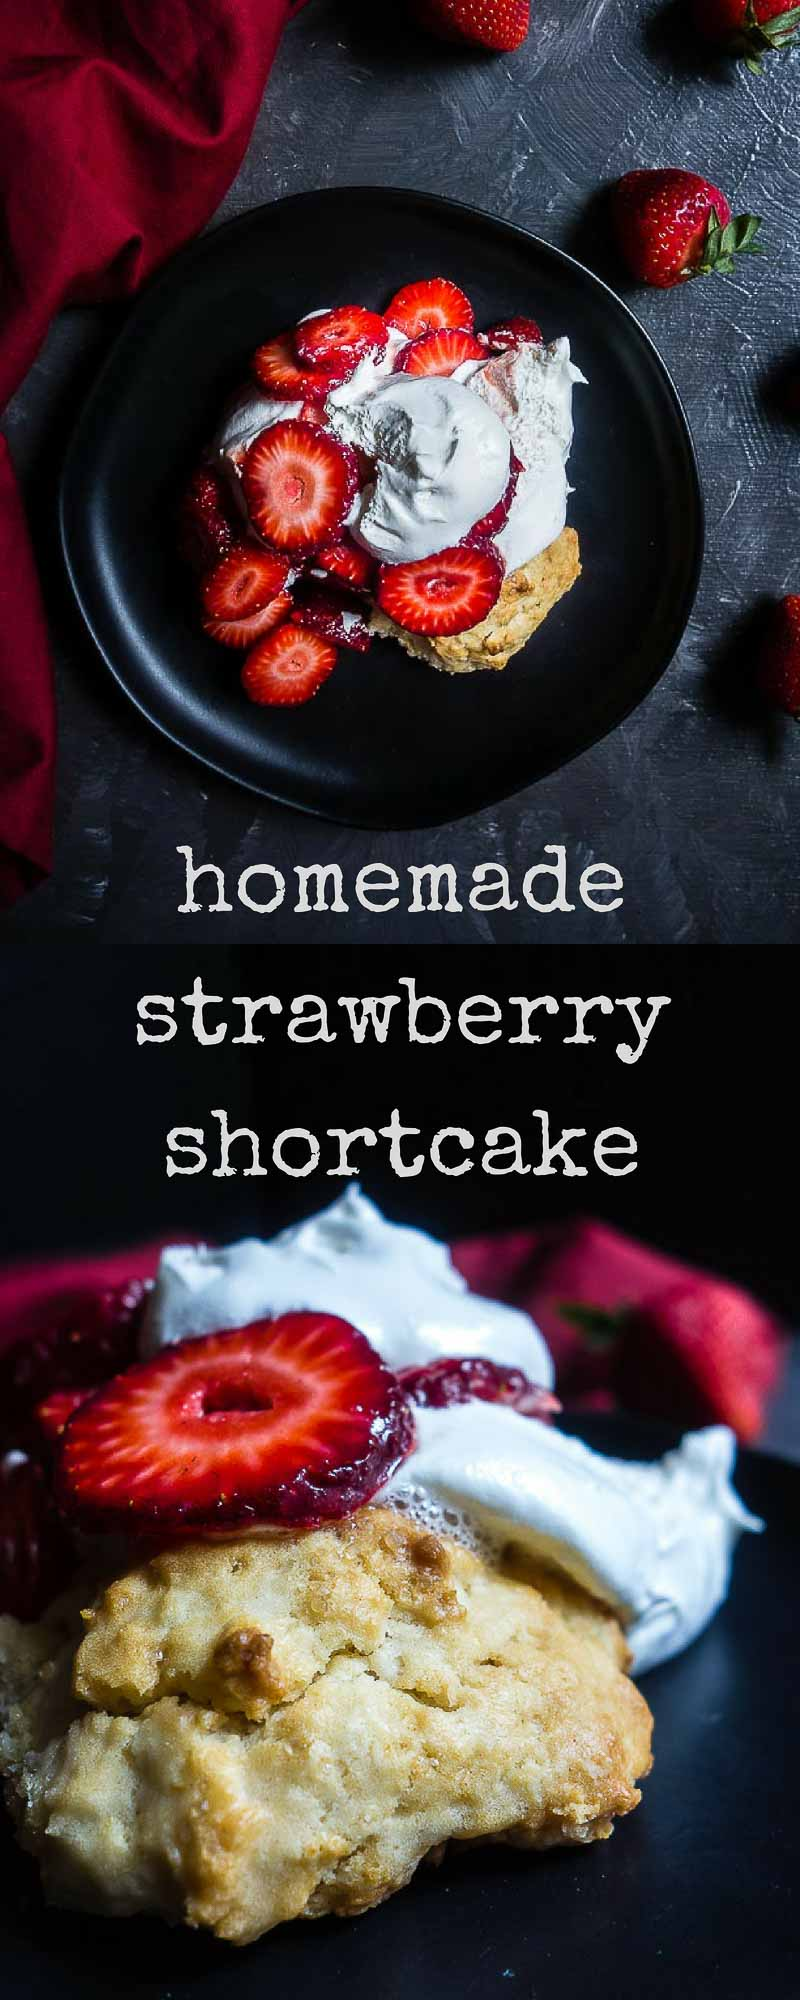 Juicy, ripe strawberries, made from scratch shortcake and homemade whipped cream make this homemade strawberry shortcake one of the best summer treats ever!strawberry recipes | homemade shortcake | from scratch strawberry shortcake | strawberry shortcake biscuits | homemade whipped cream | fresh strawberries | mini strawberry shortcakes